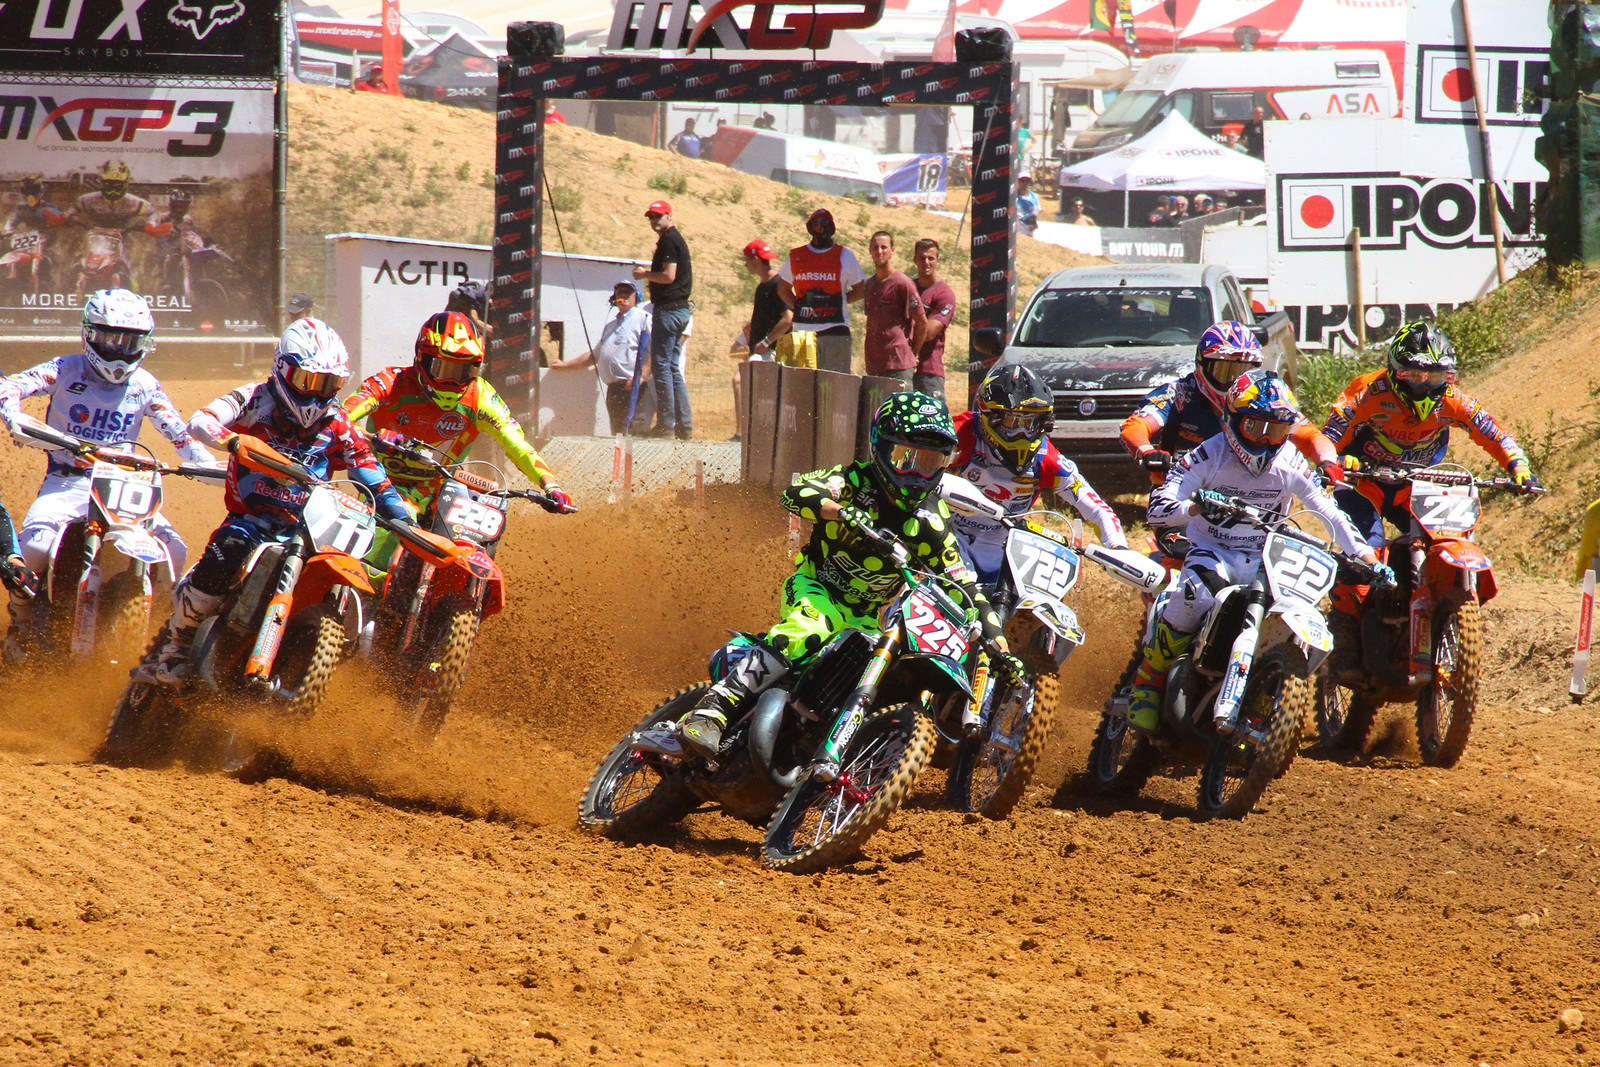 Brian Strubhart Moreau - ayearinmx - Motocross Pictures - Vital MX